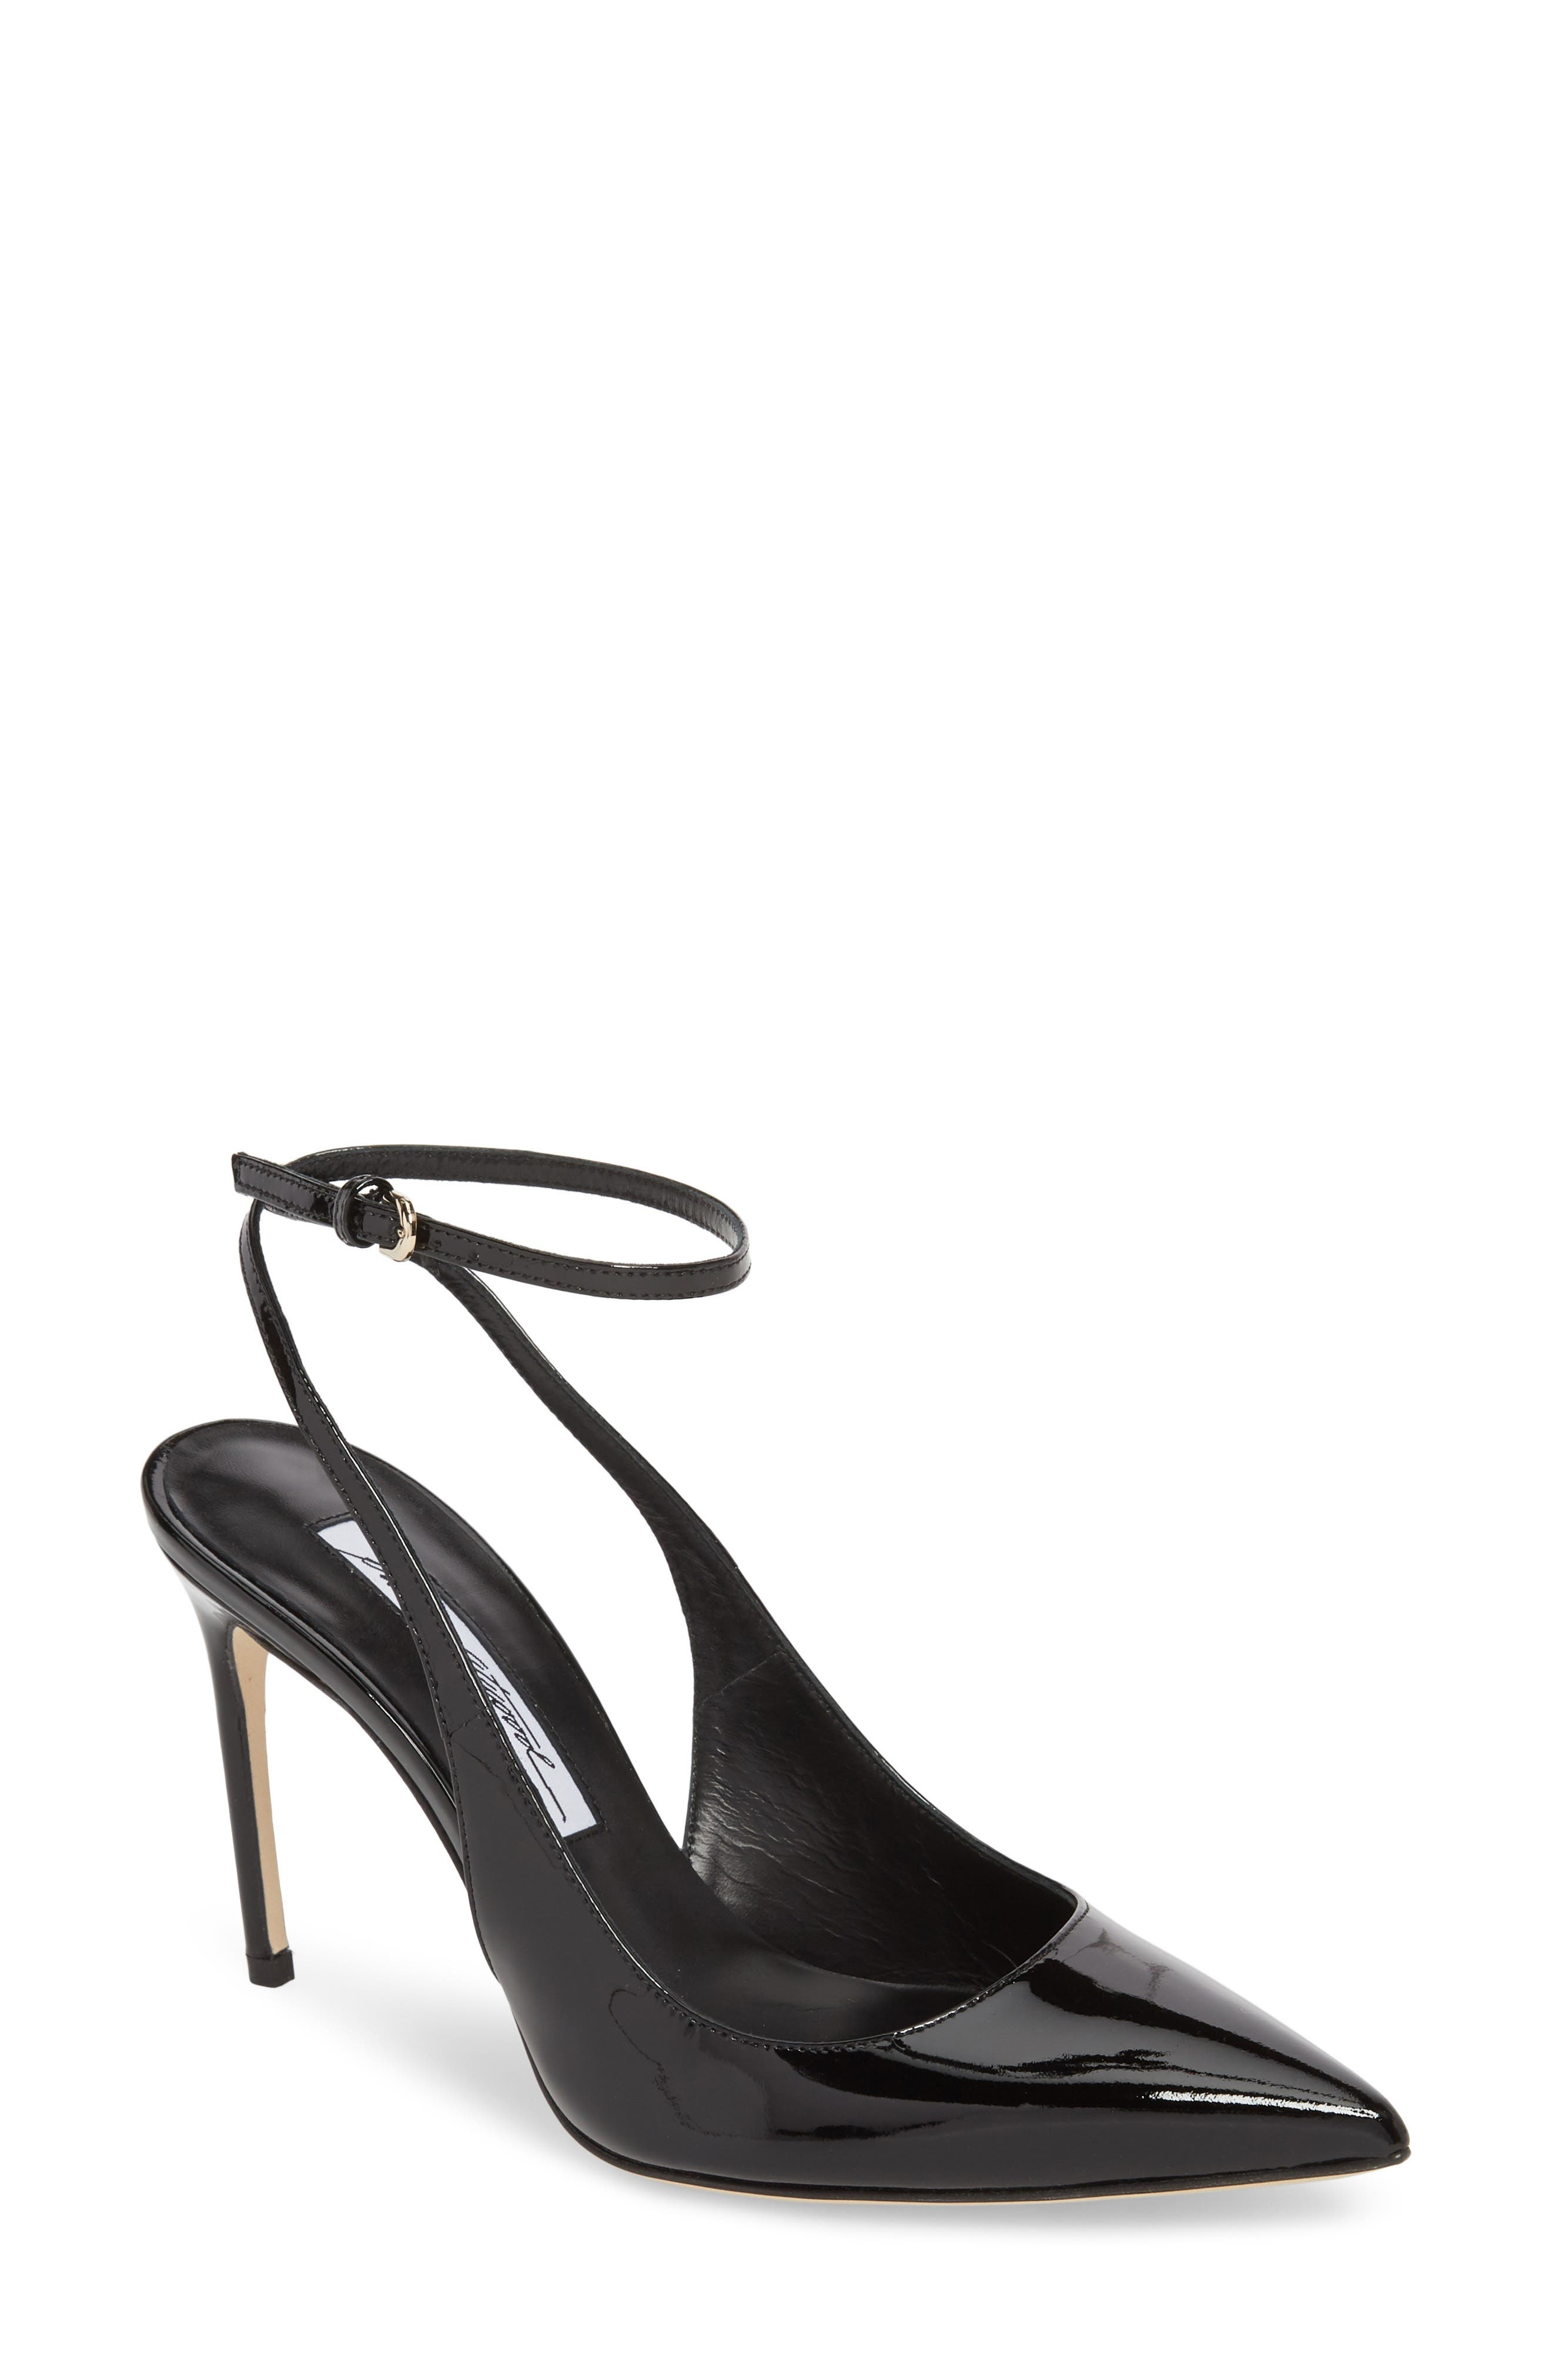 BRIAN ATWOOD Vicky Wraparound Pump in Black Patent